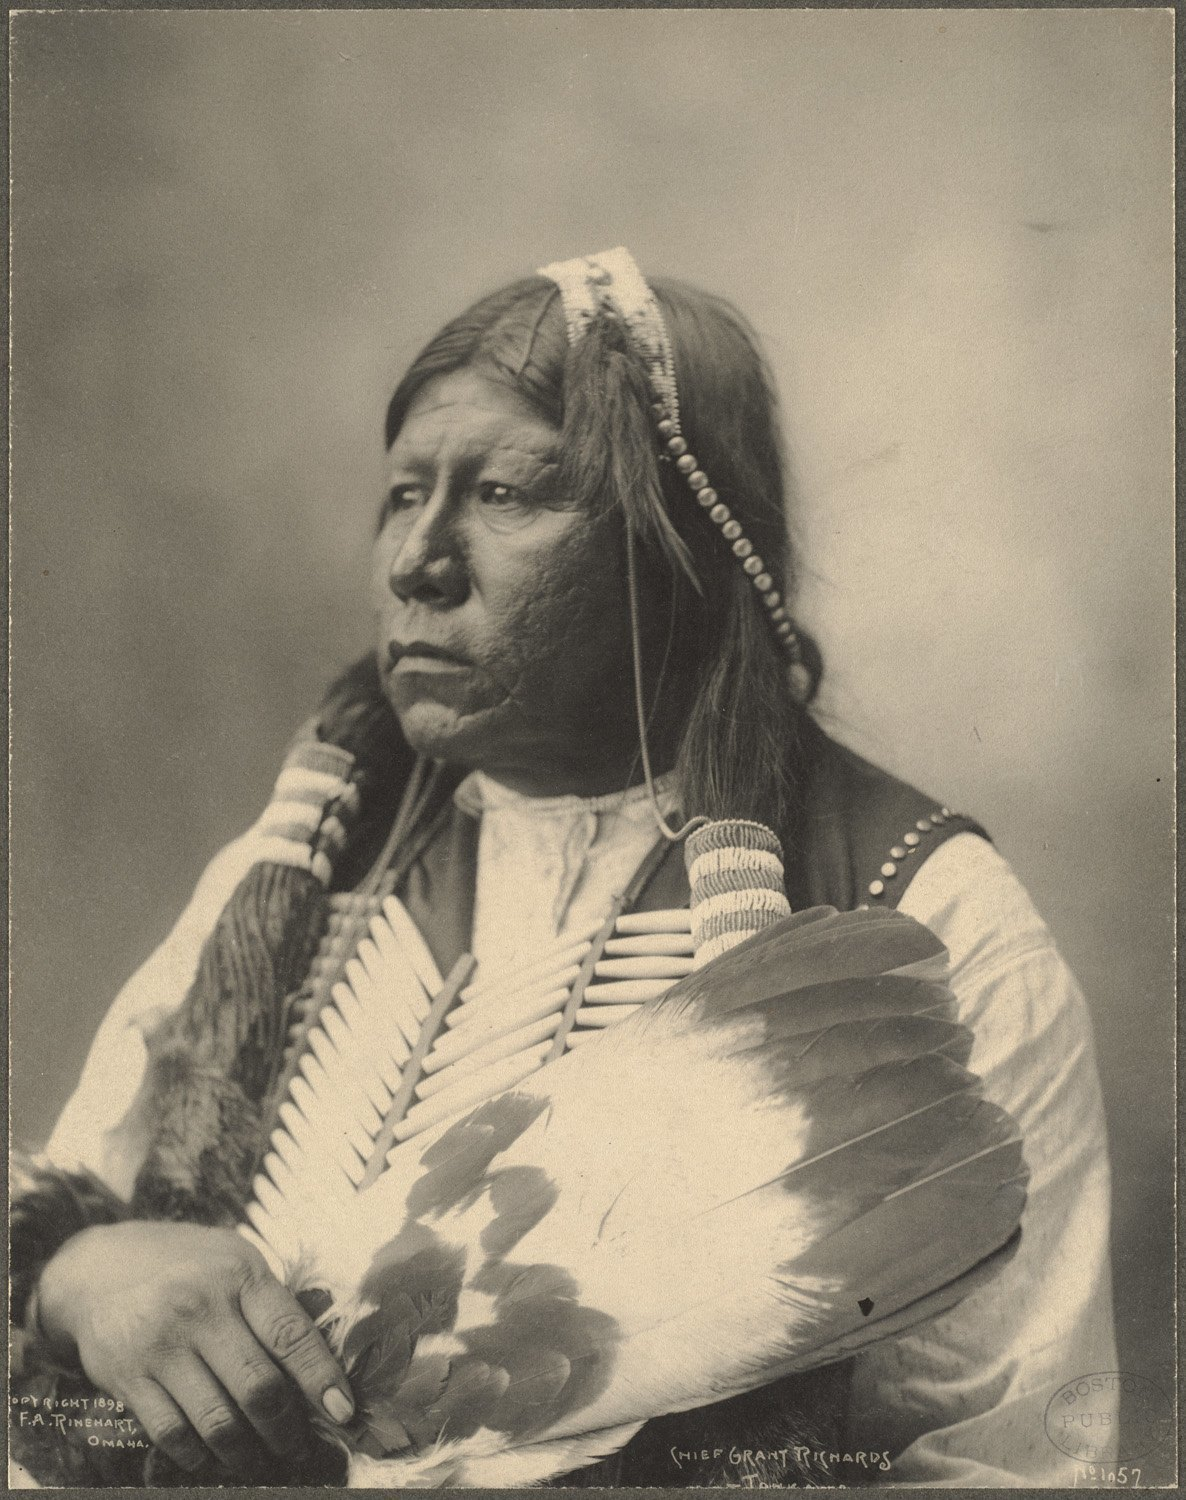 Chief Grant Richards, Tonkawa, 1899. (Photo by Frank A. Rinehart)